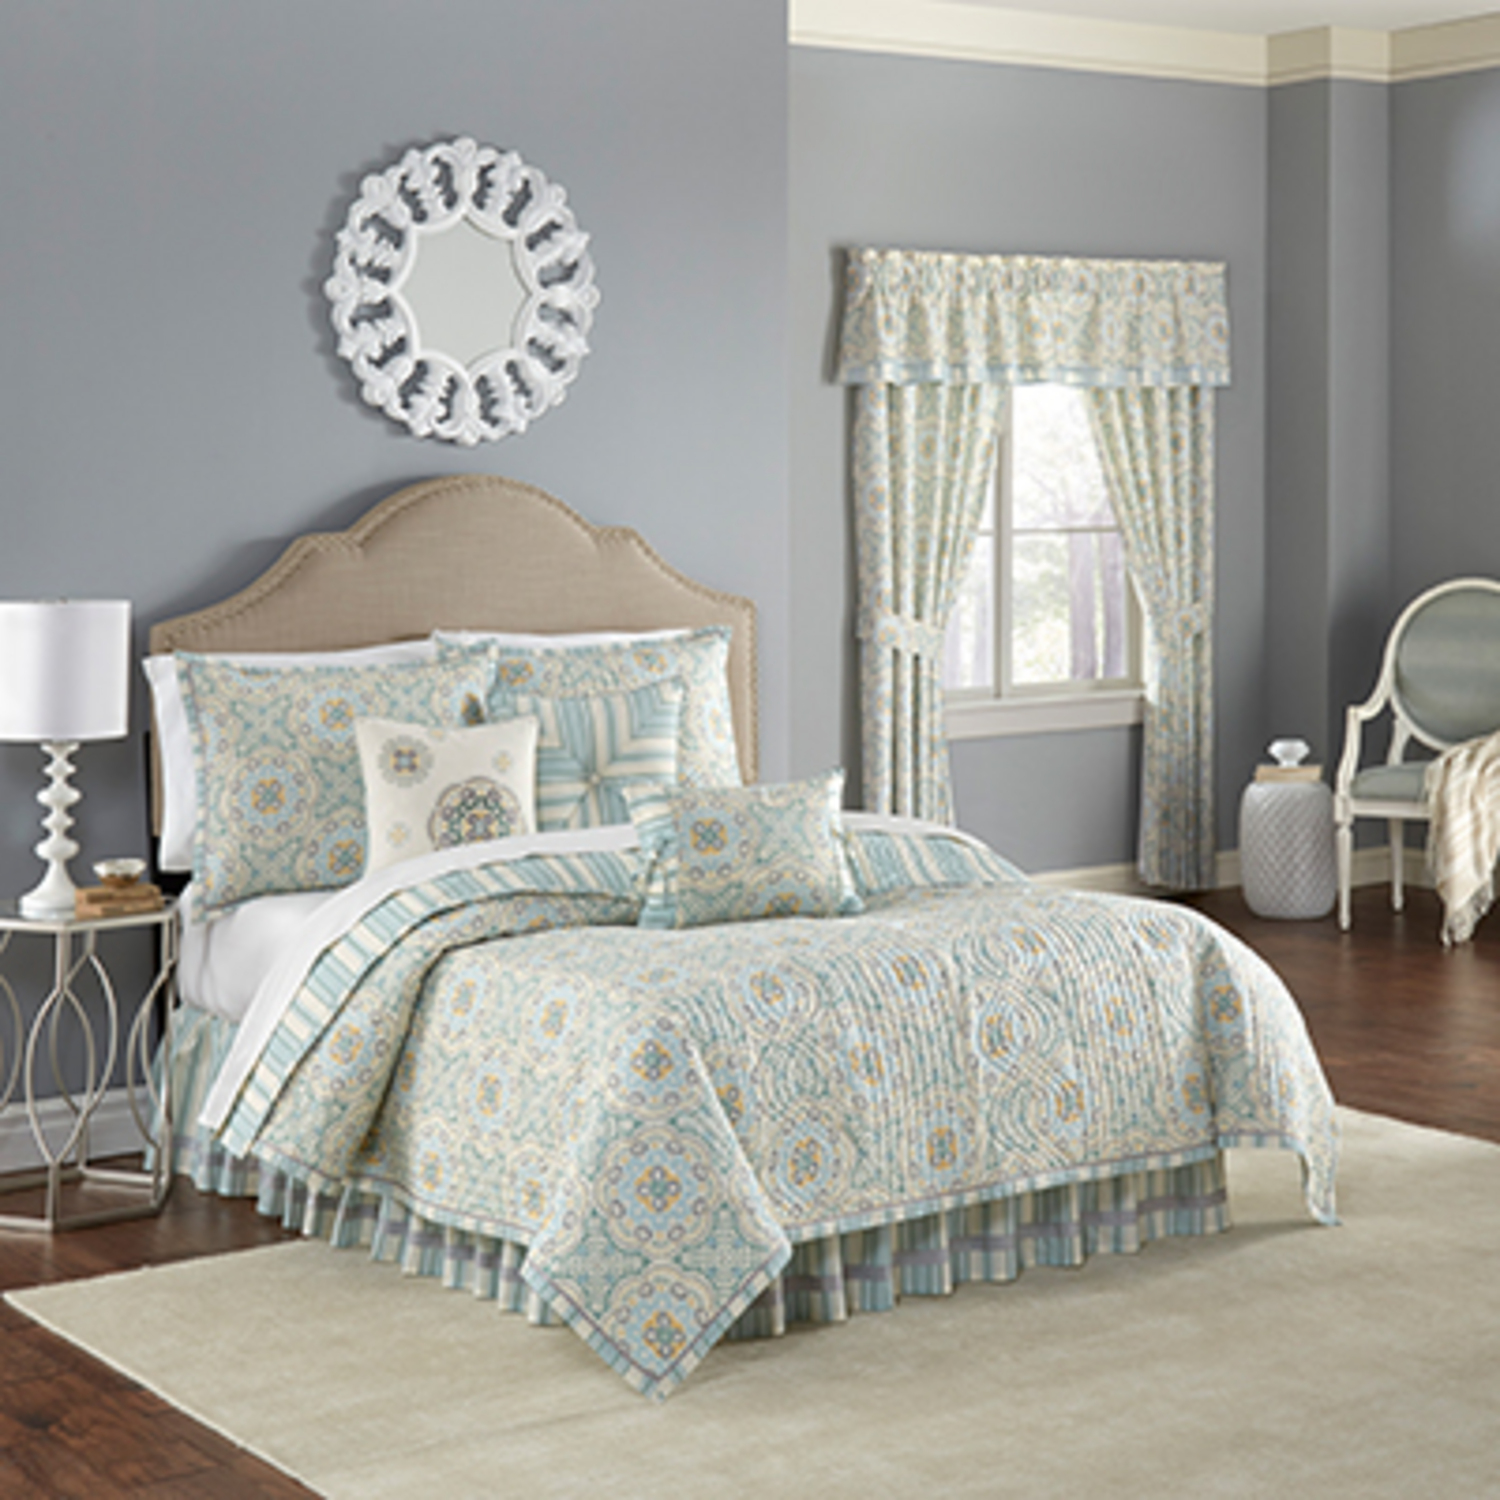 Astrid By Waverly Bedding Collection